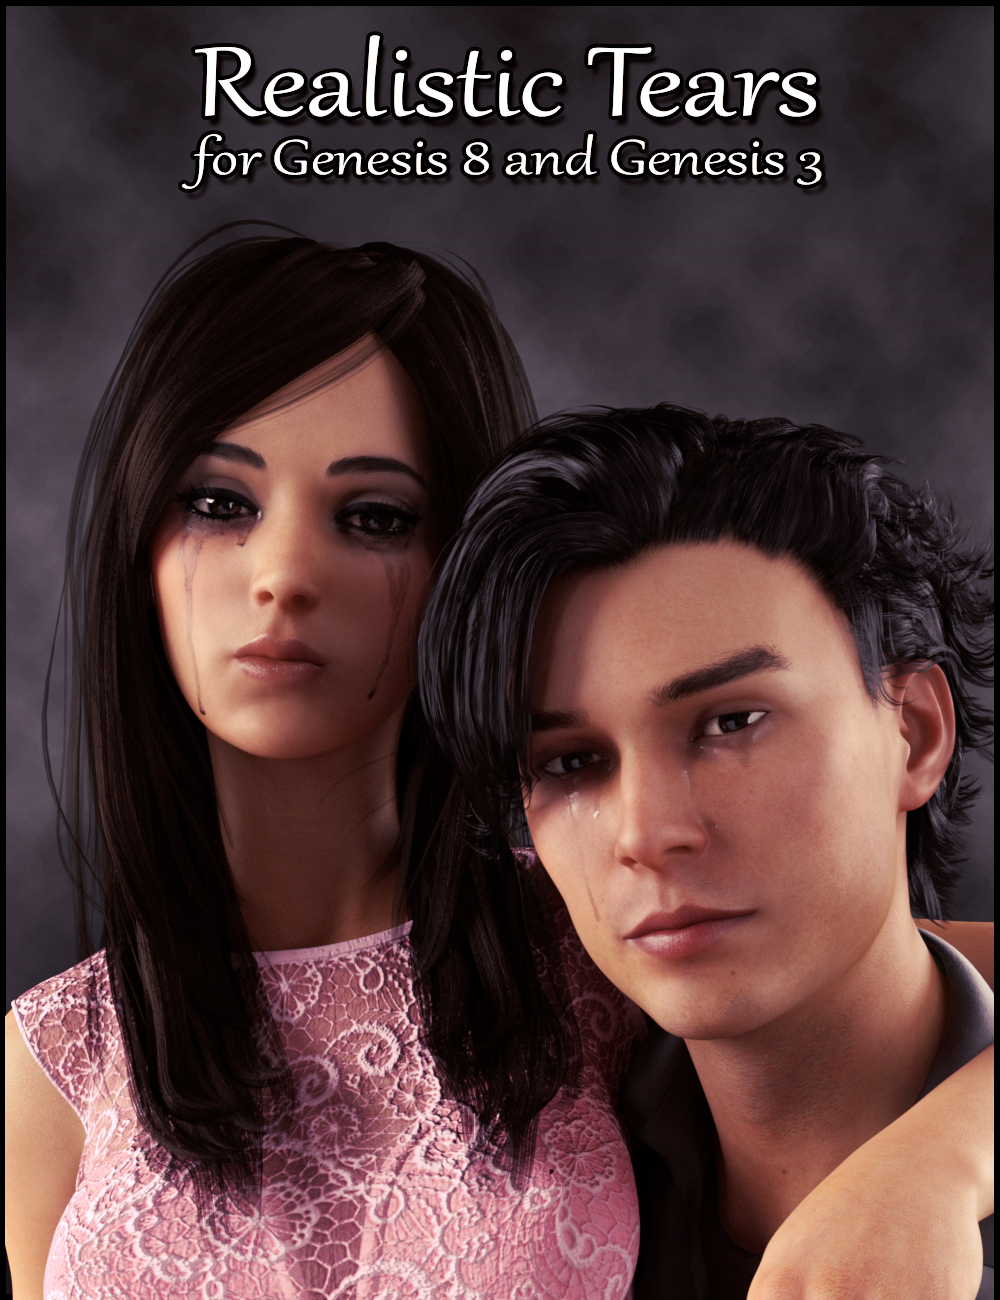 Realistic Tears for Genesis 8 and Genesis 3 by: Falco, 3D Models by Daz 3D